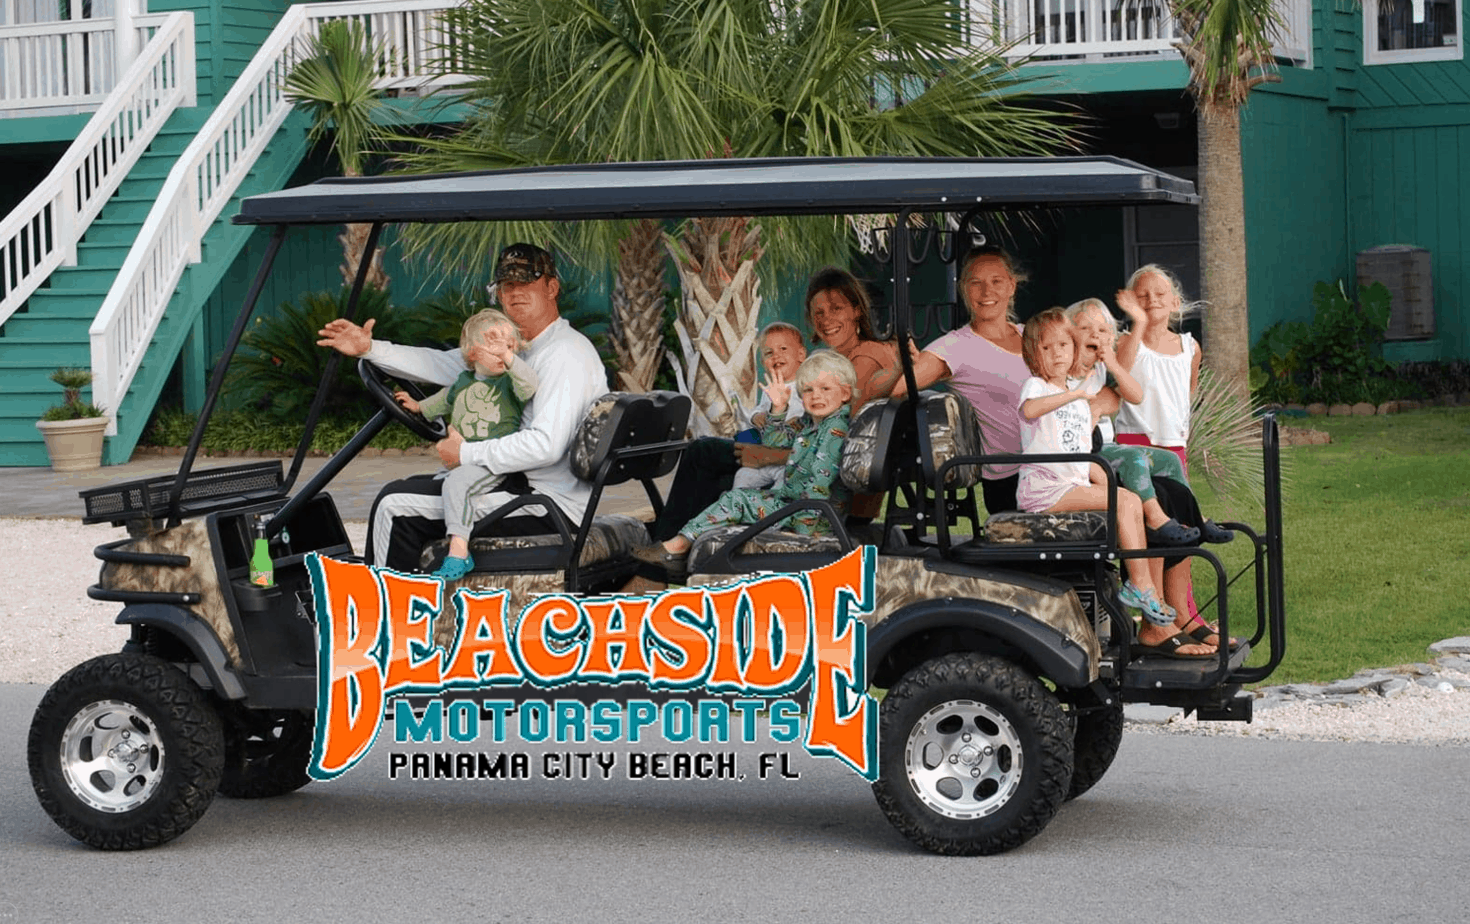 Beachside MotorSports - Panama Ctiy Beach - Golf Cart Rentals - Panama City Beach